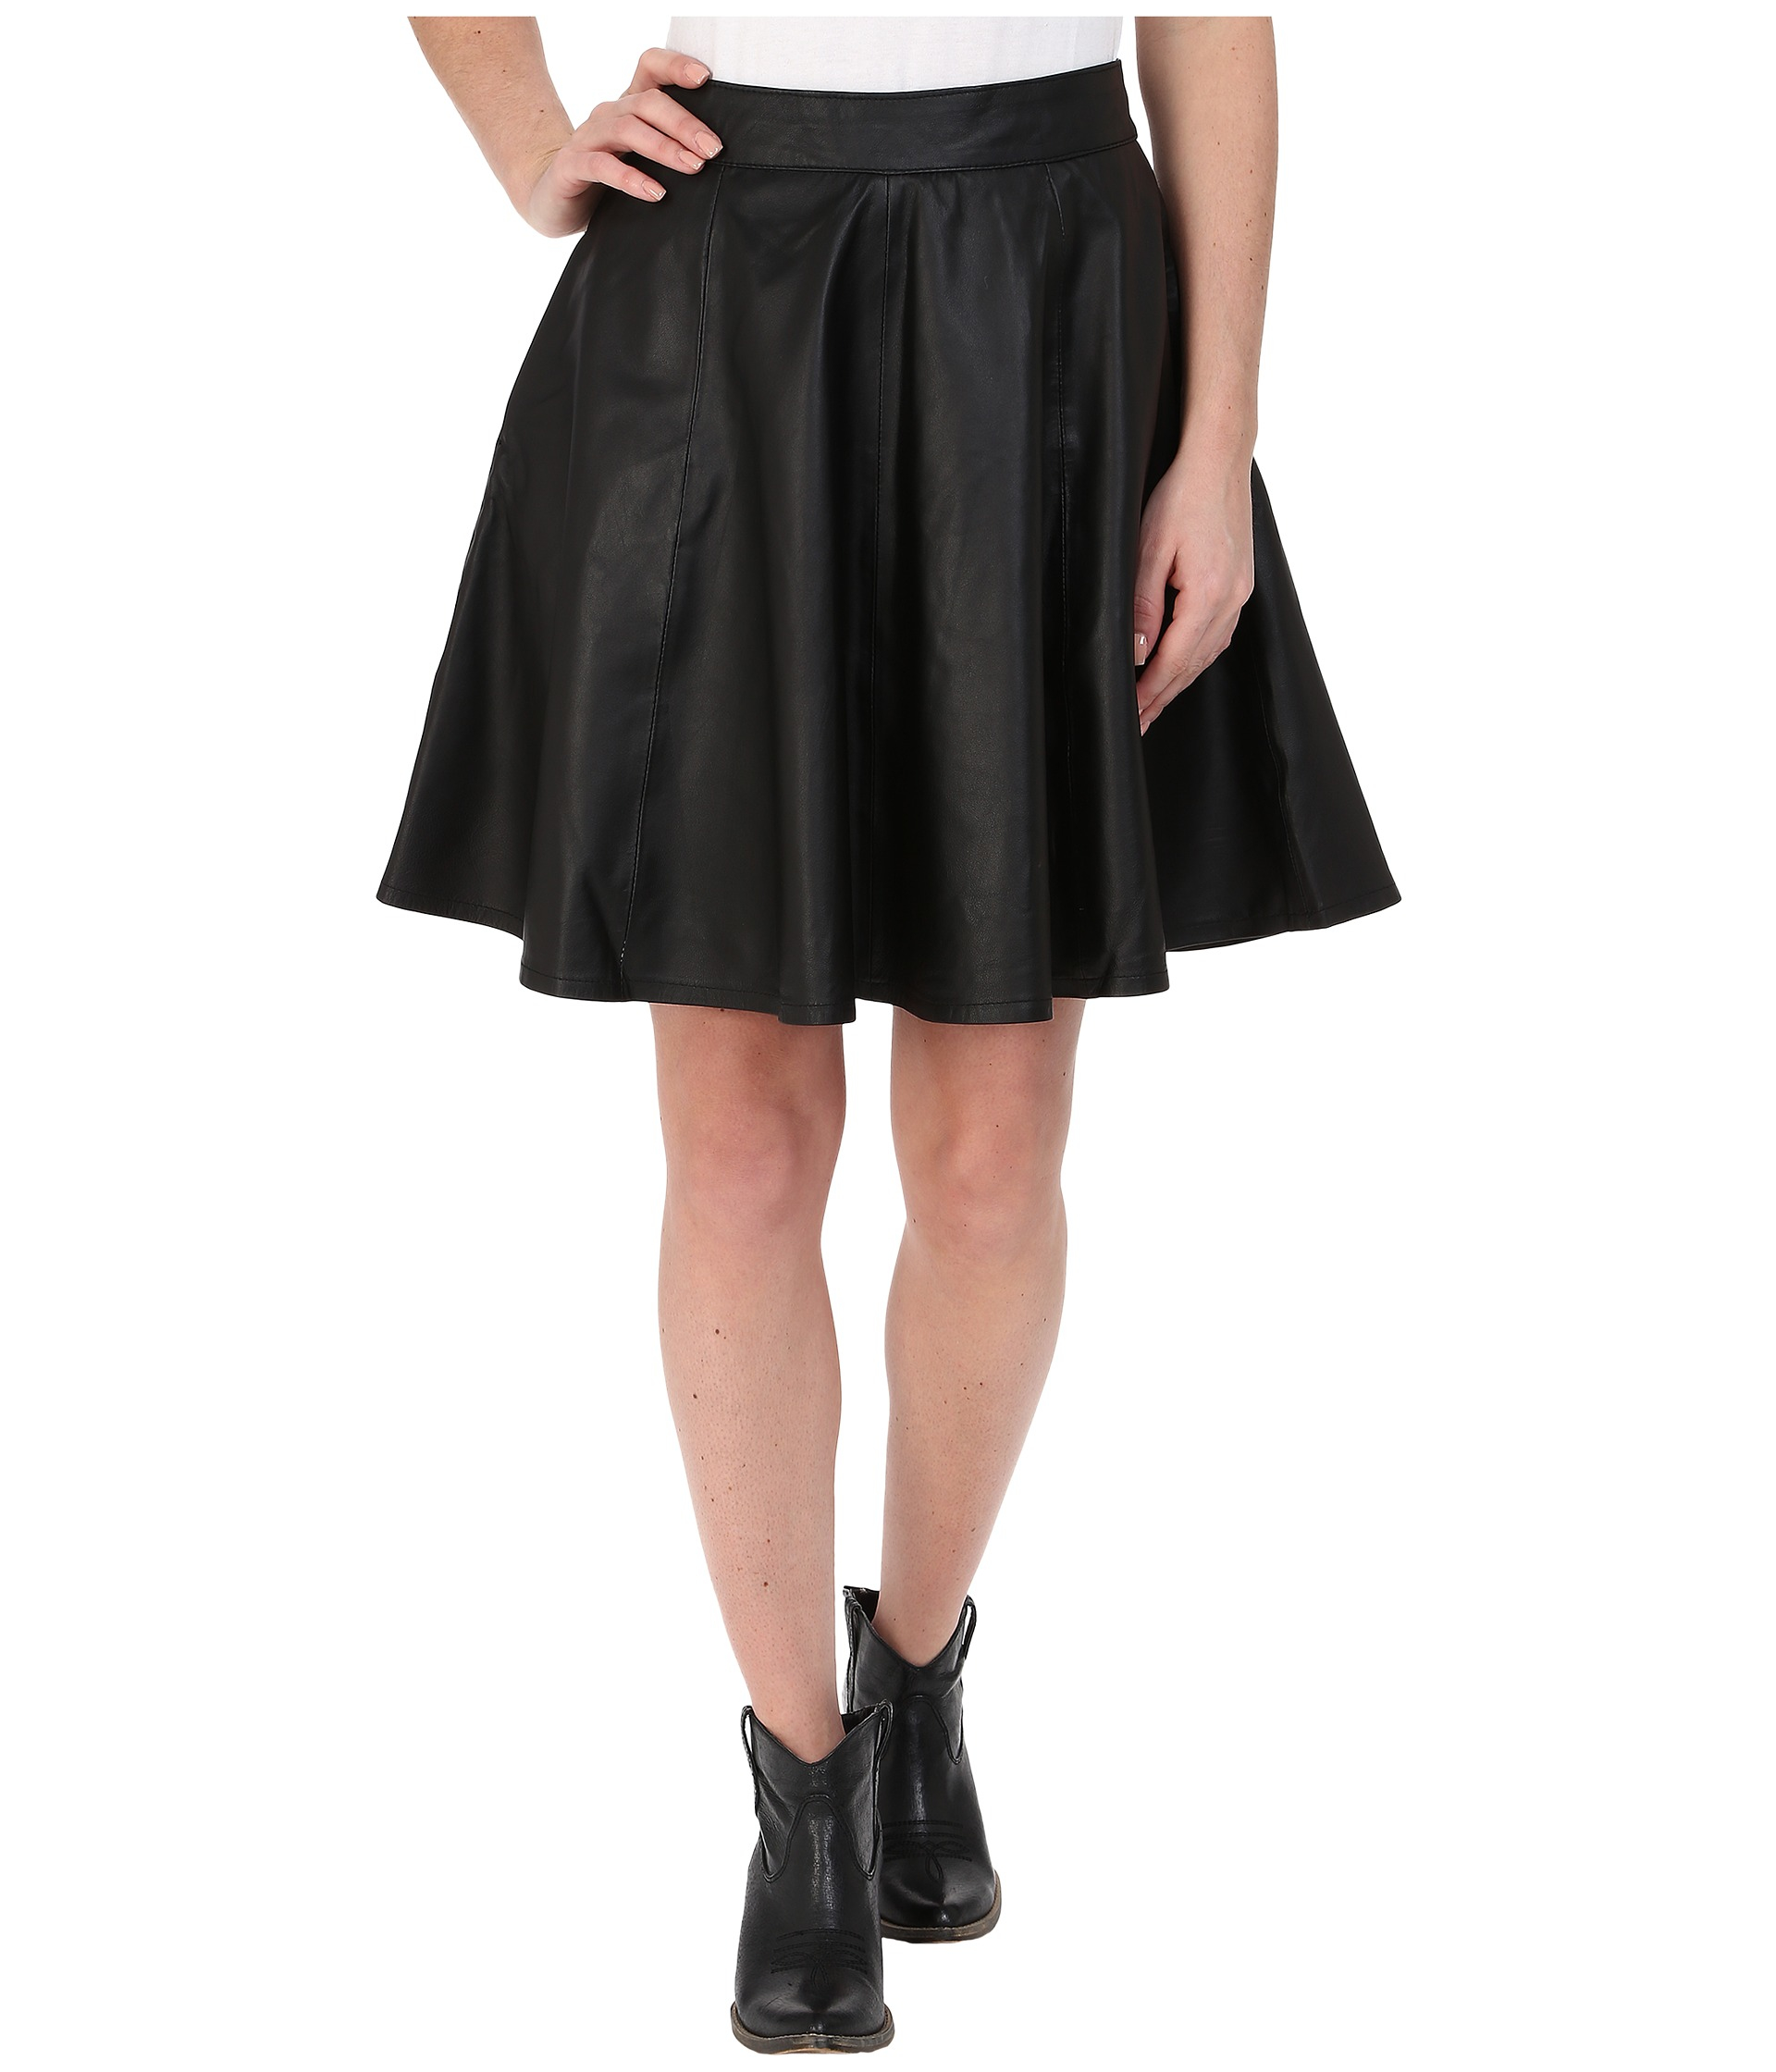 stetson black leather circle skirt in black lyst